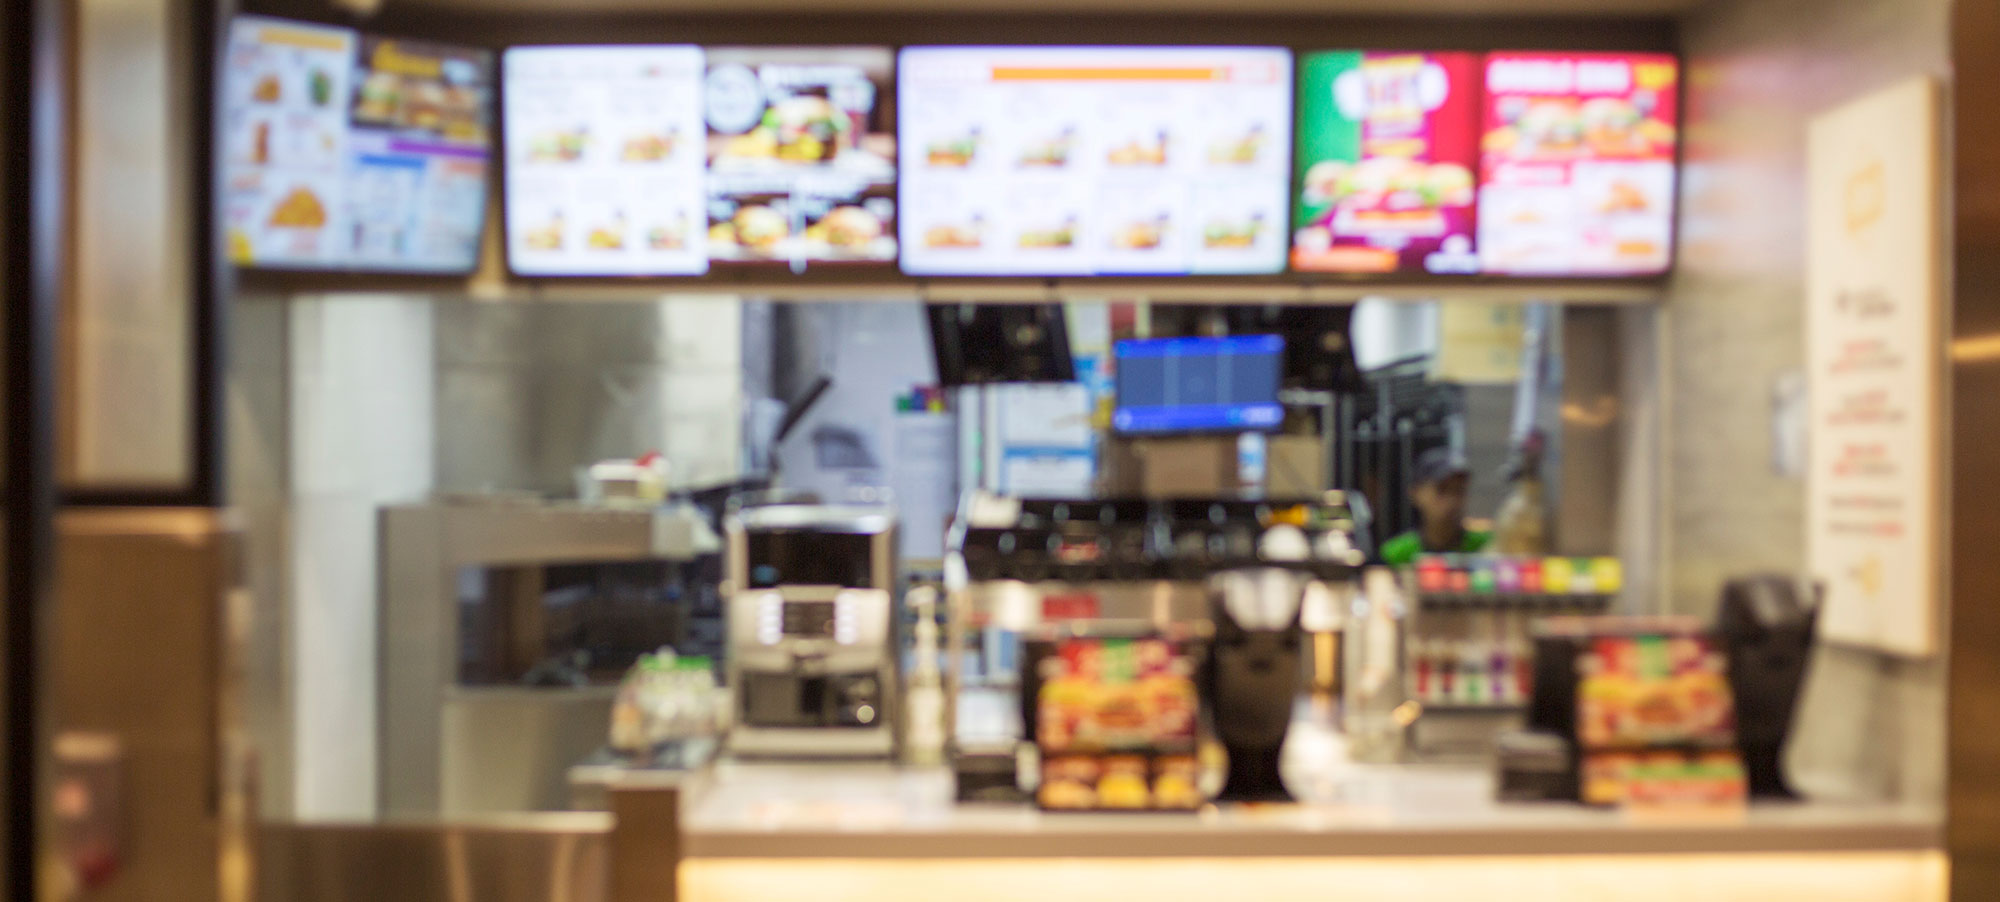 Blurred out image of the inside of a fast food restaurant.